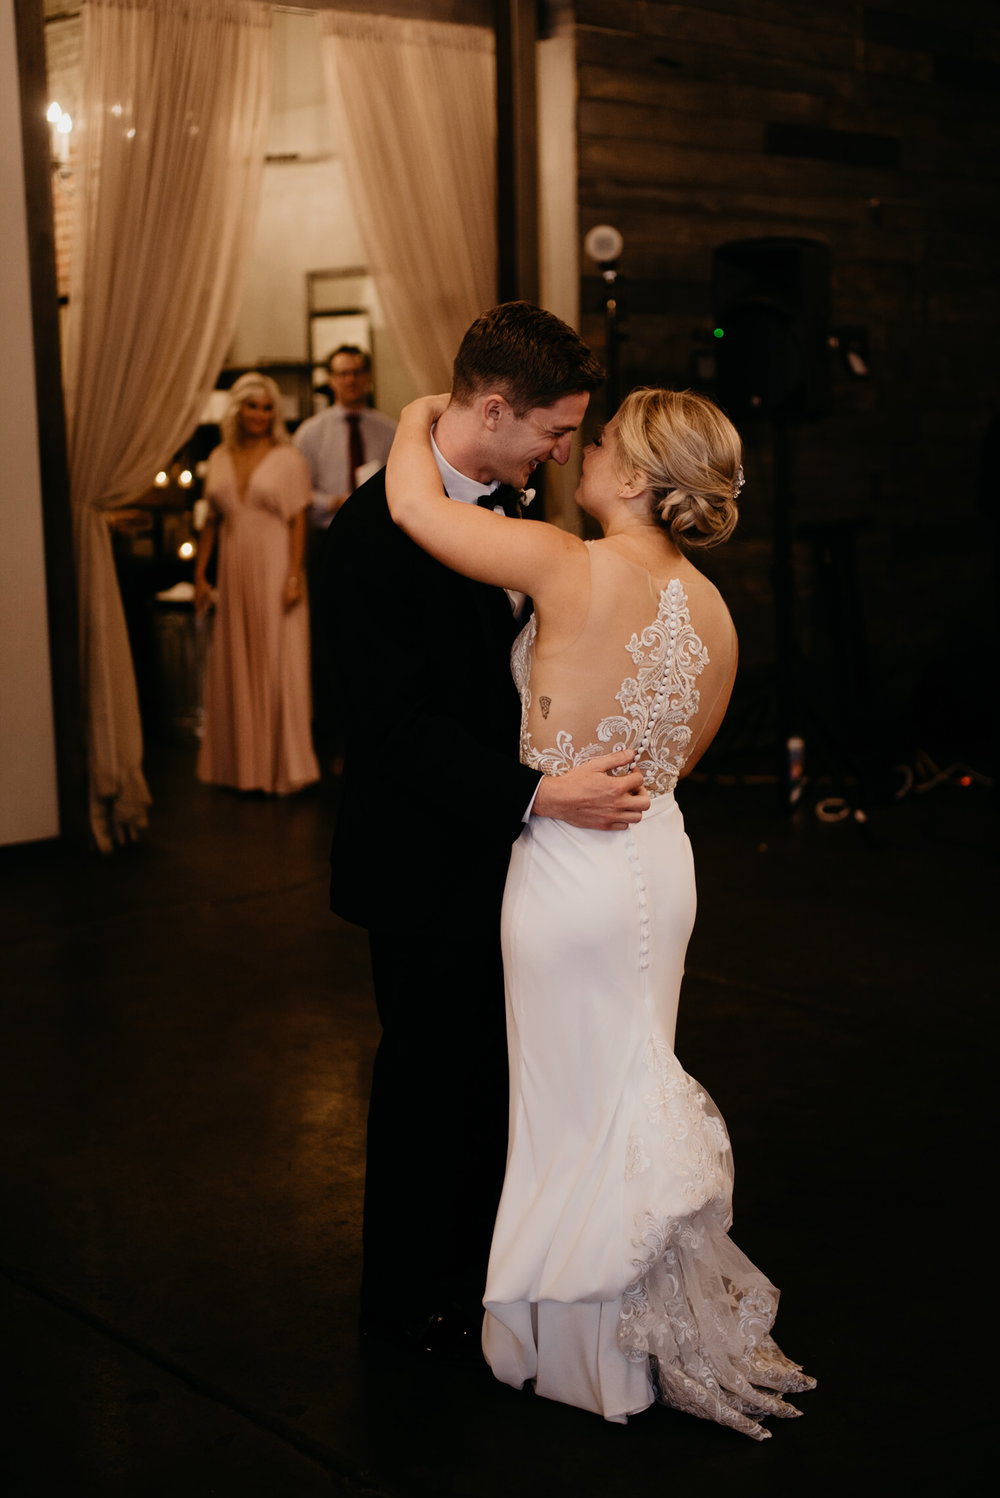 Downtown Denver wedding photographer. First dance at Denver wedding venue, Moss.